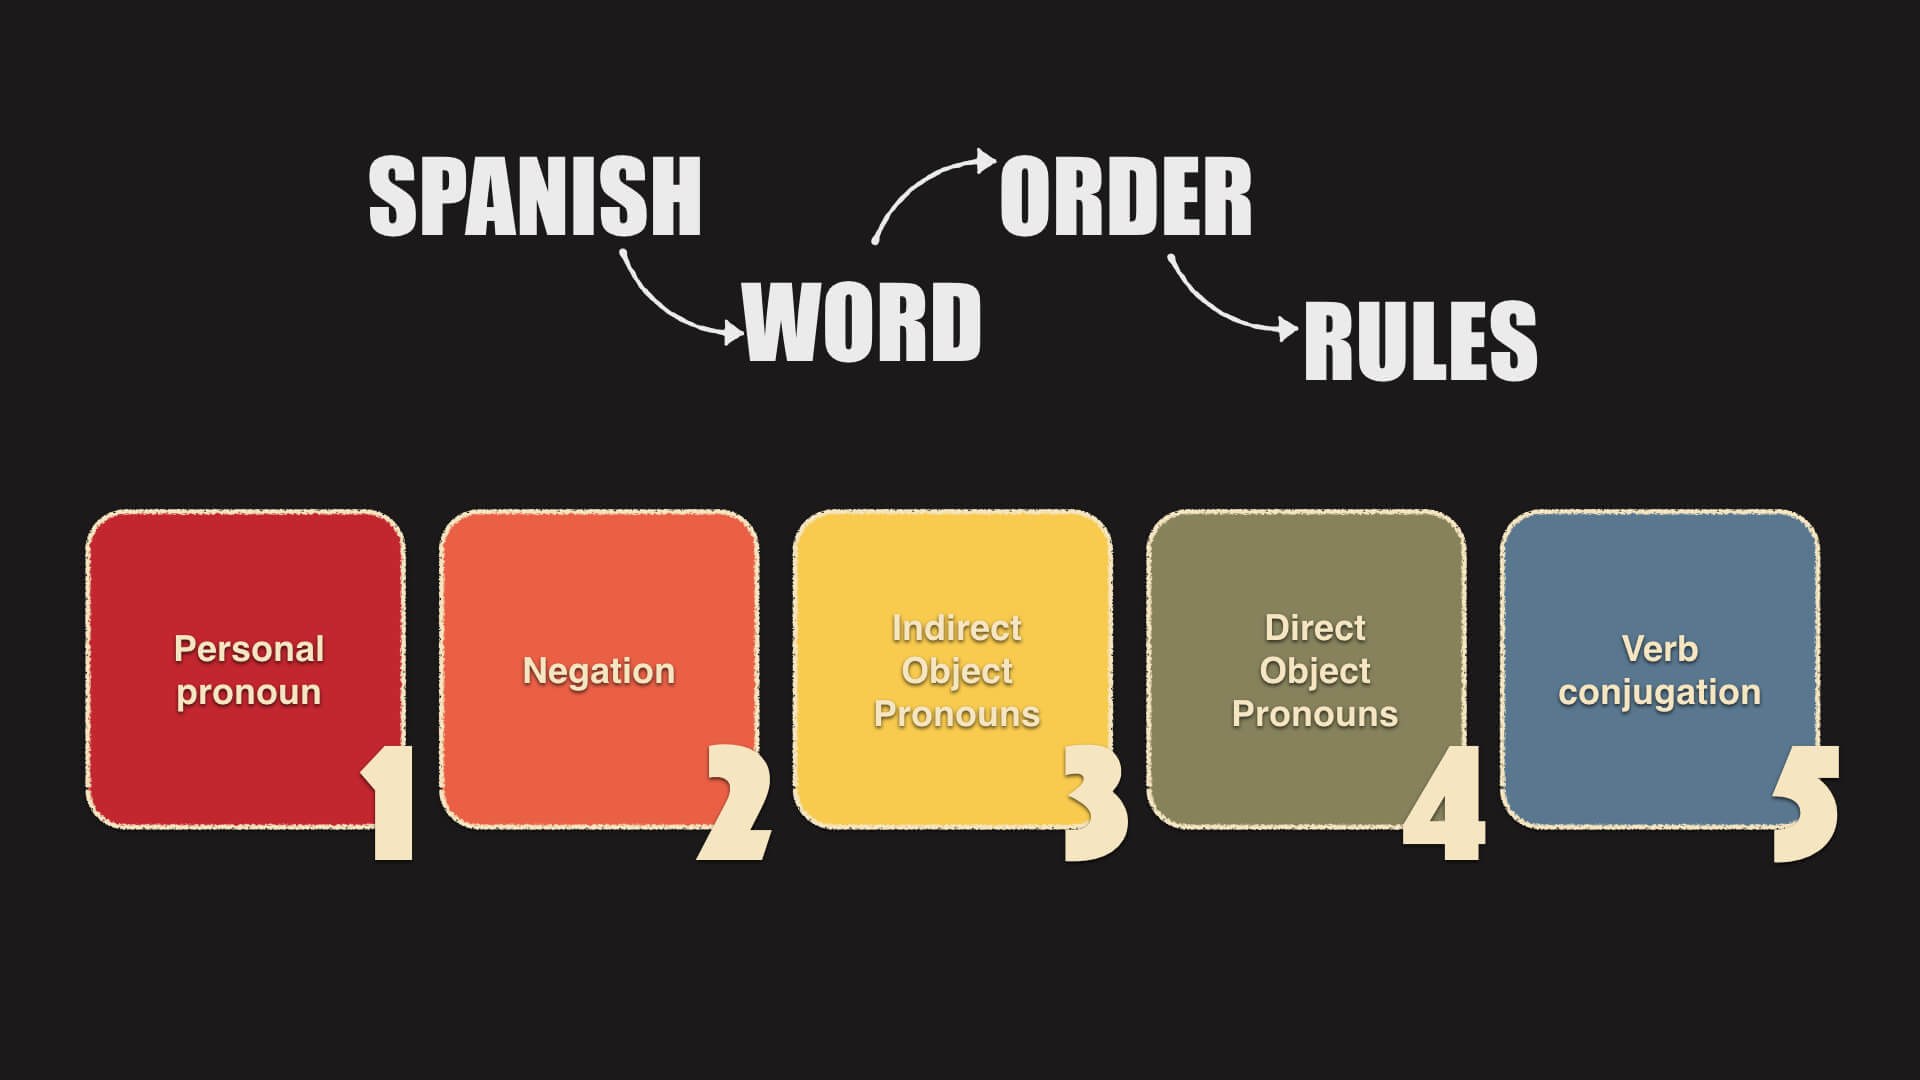 5 Basic Rules About Spanish Word Order